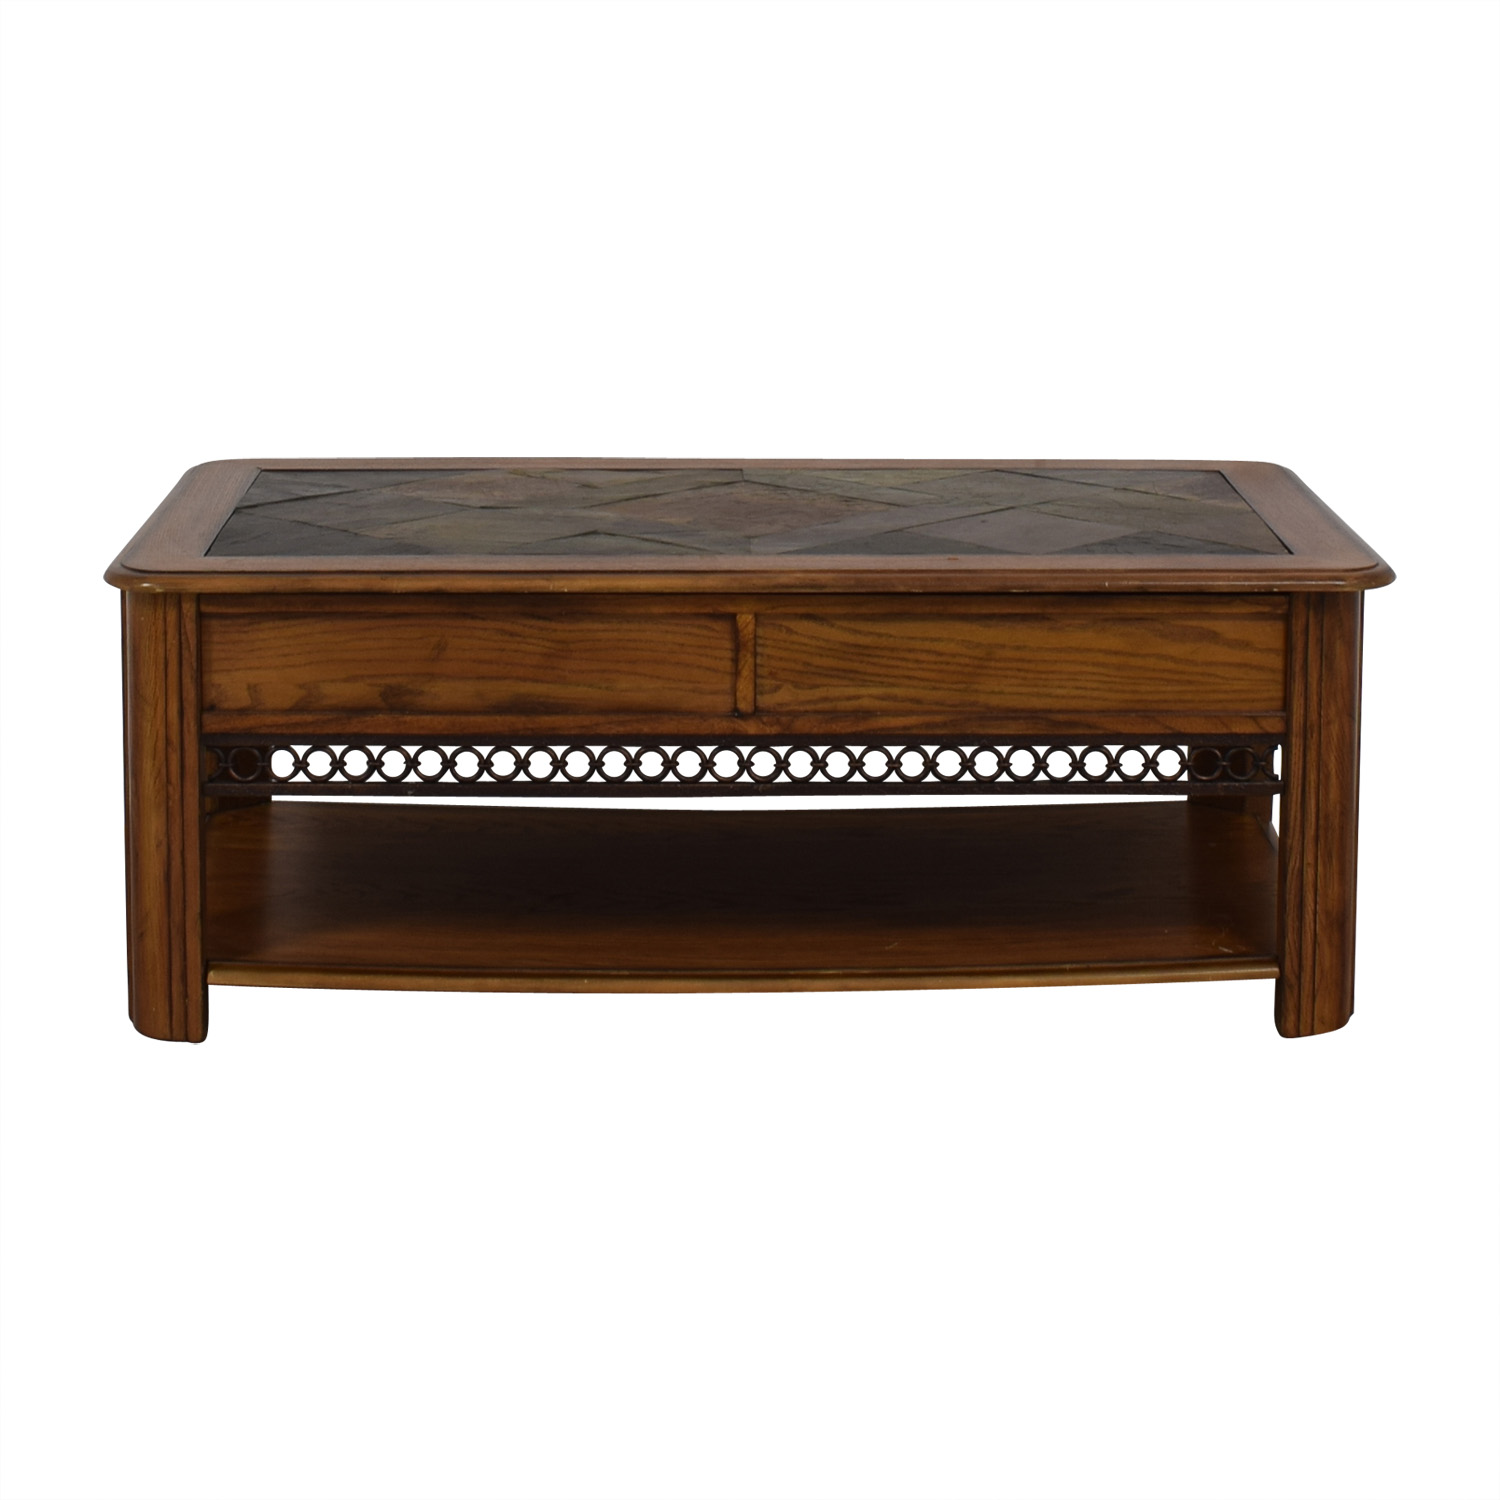 Raymour & Flanigan Raymour & Flanigan Lift Top Wood Coffee Table